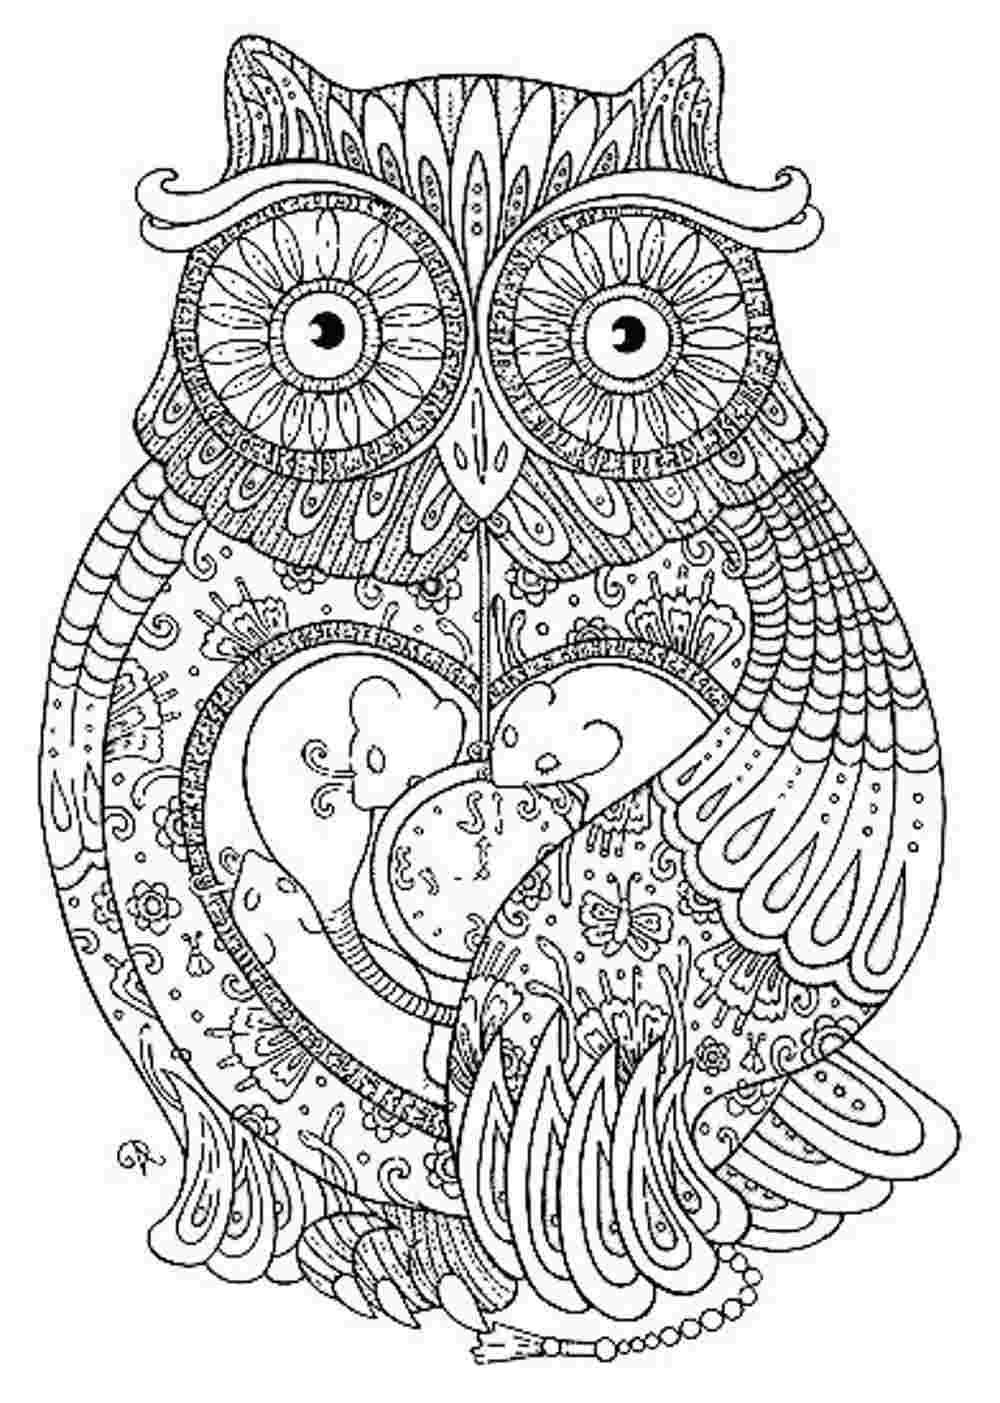 Owl Coloring Pages For Adults Printable Kids Colouring